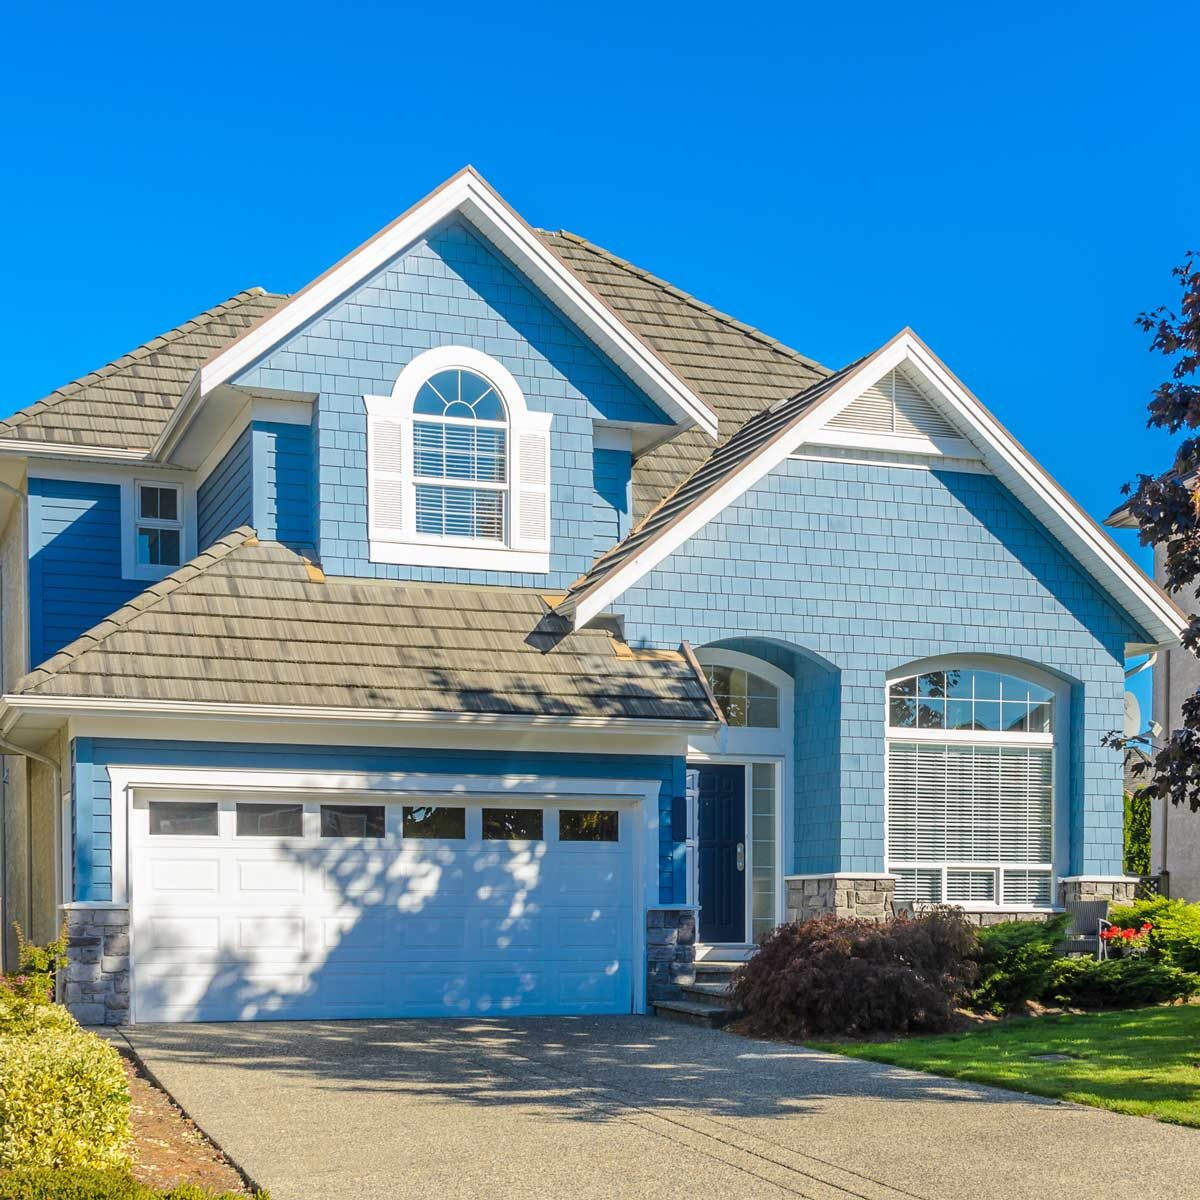 Best Exterior Paint Colors: Here Are The 19 Most Popular Exterior Colors